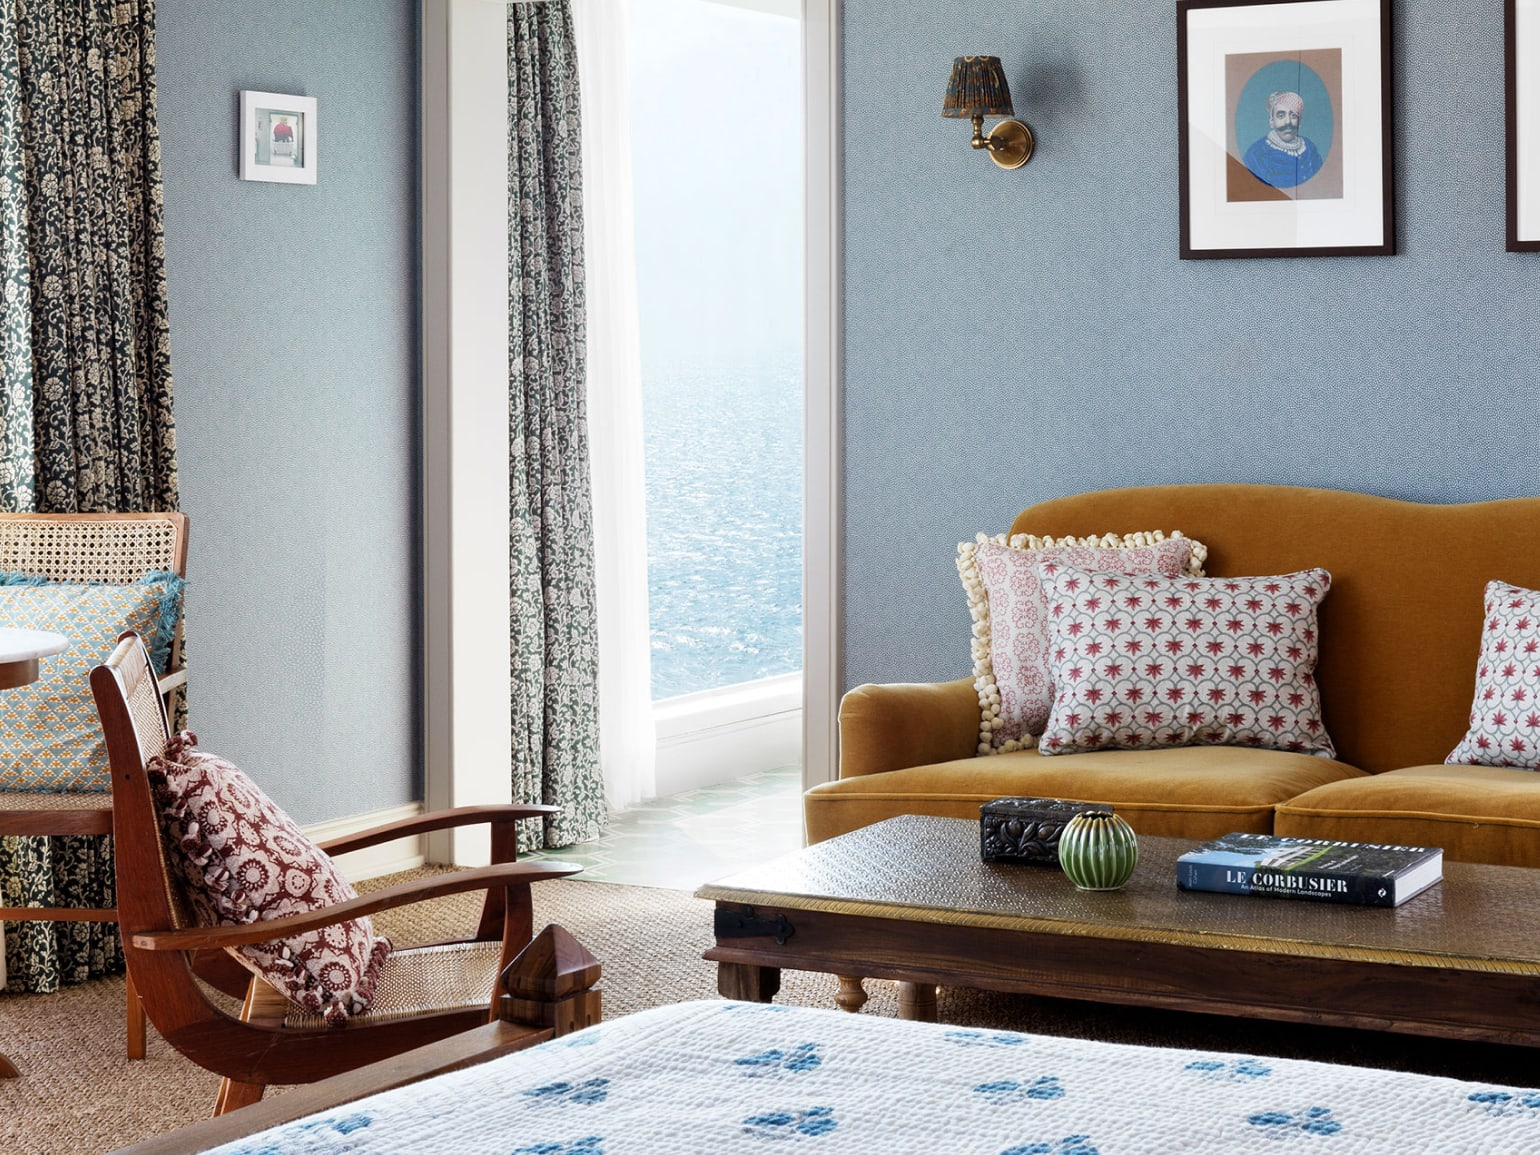 The corner of a bedroom with a doorway leading to an balcony overlooking the sea.